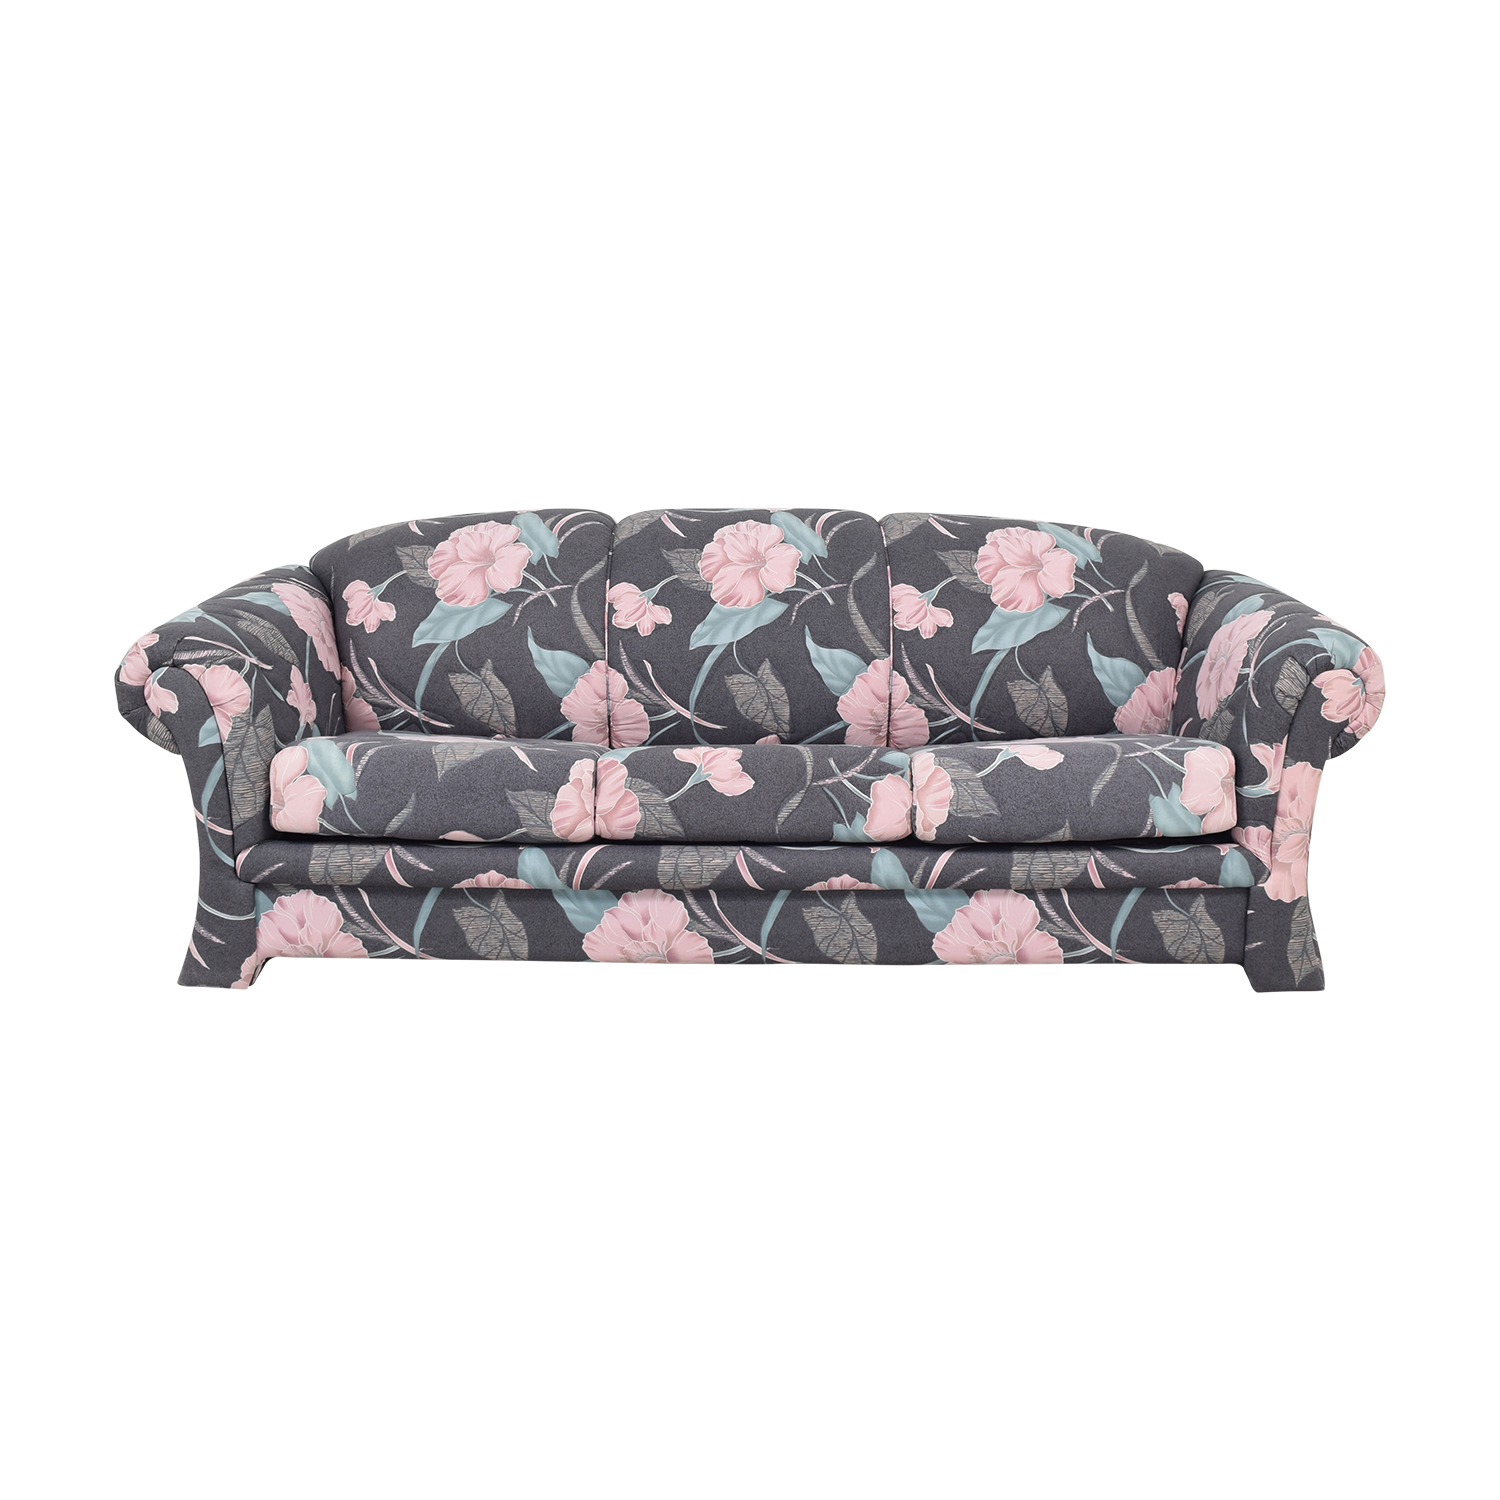 Floral Upholstered Queen Sleeper Sofa multi